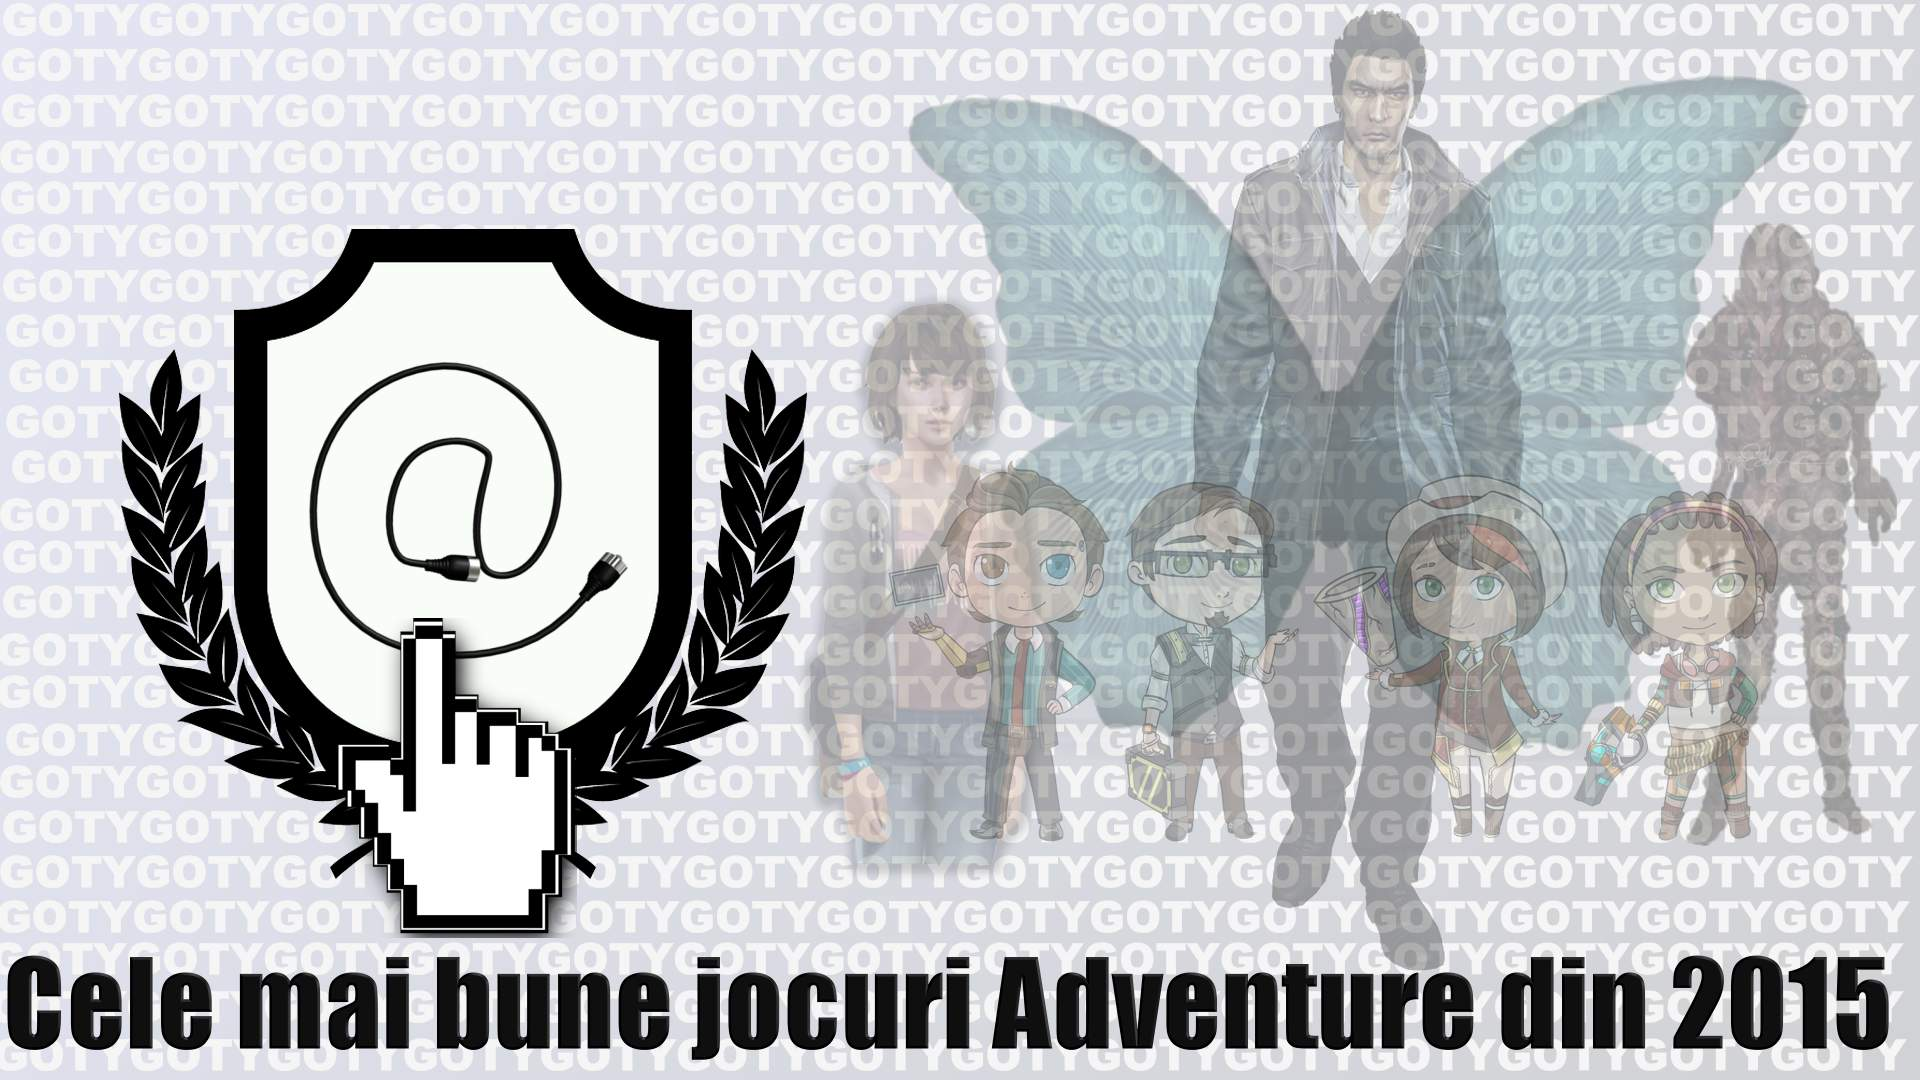 Photo of Top 5 cele mai bune jocuri Adventure din 2015